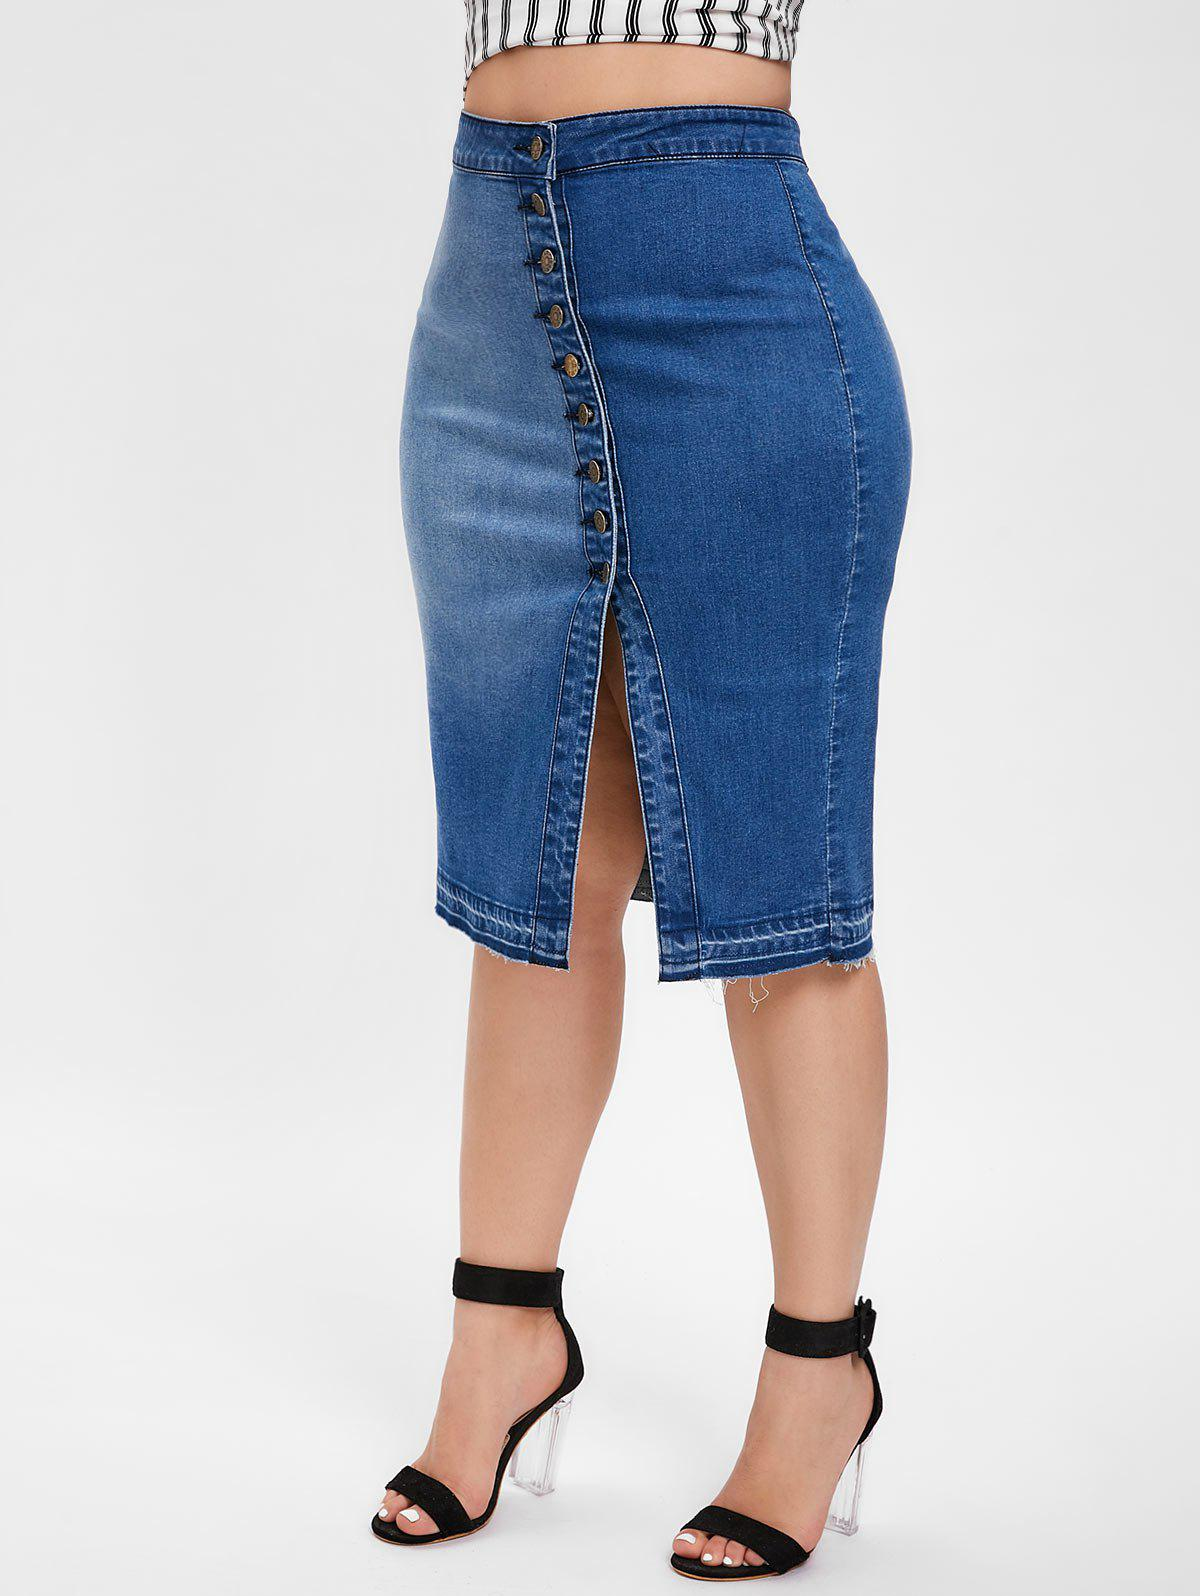 7b39c9ff4ce75 2019 Plus Size Button Front High Waist Denim Skirt